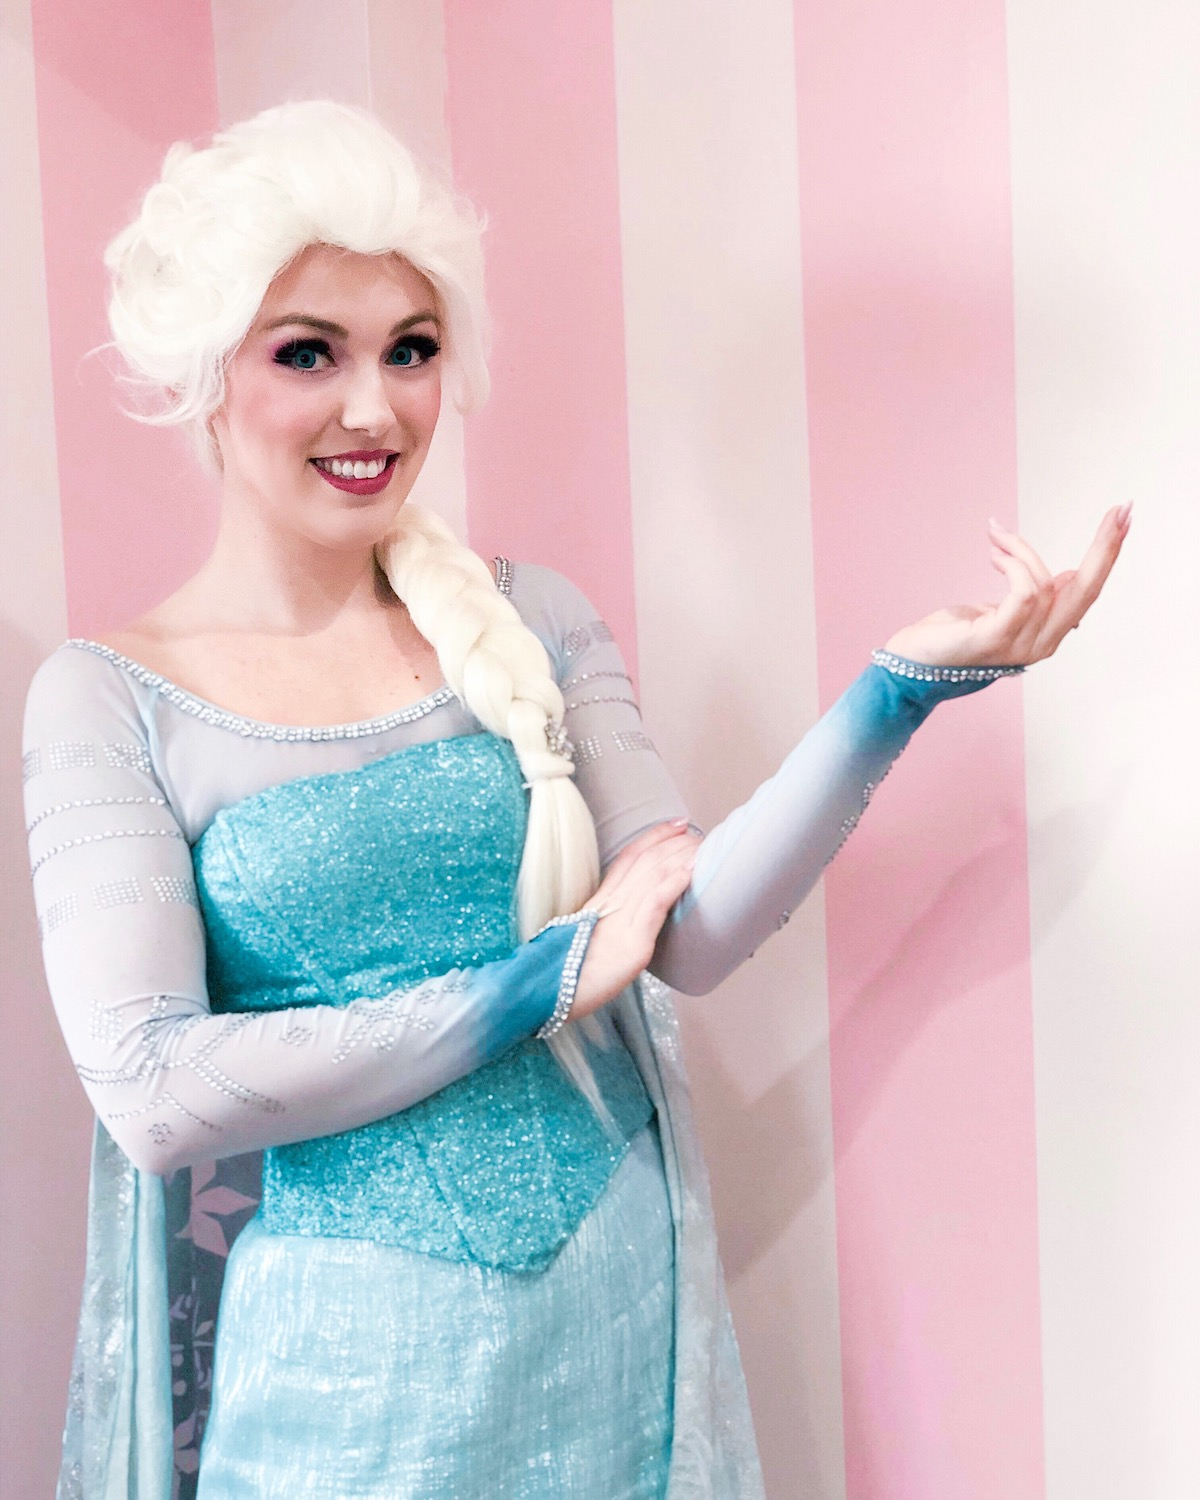 Elsa is smiling and ready to make a flurry with her iconic ice hand pose